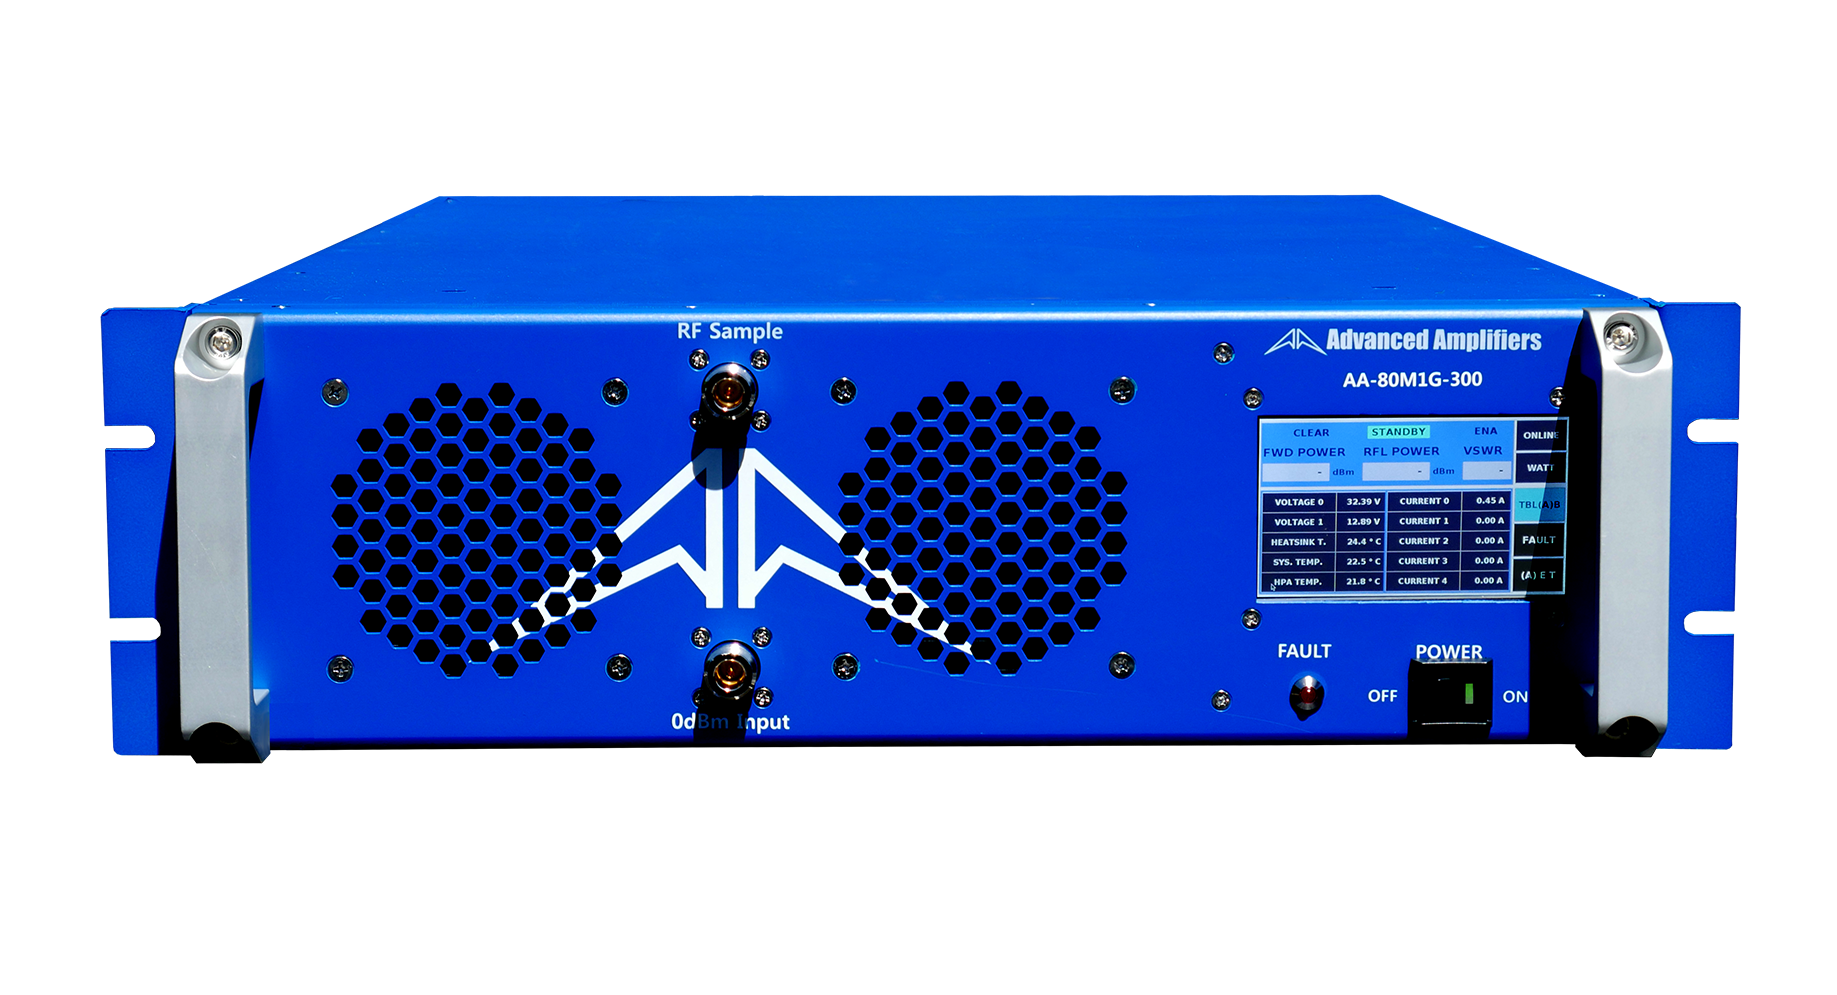 Advanced Amplifiers AA-80M1G-300